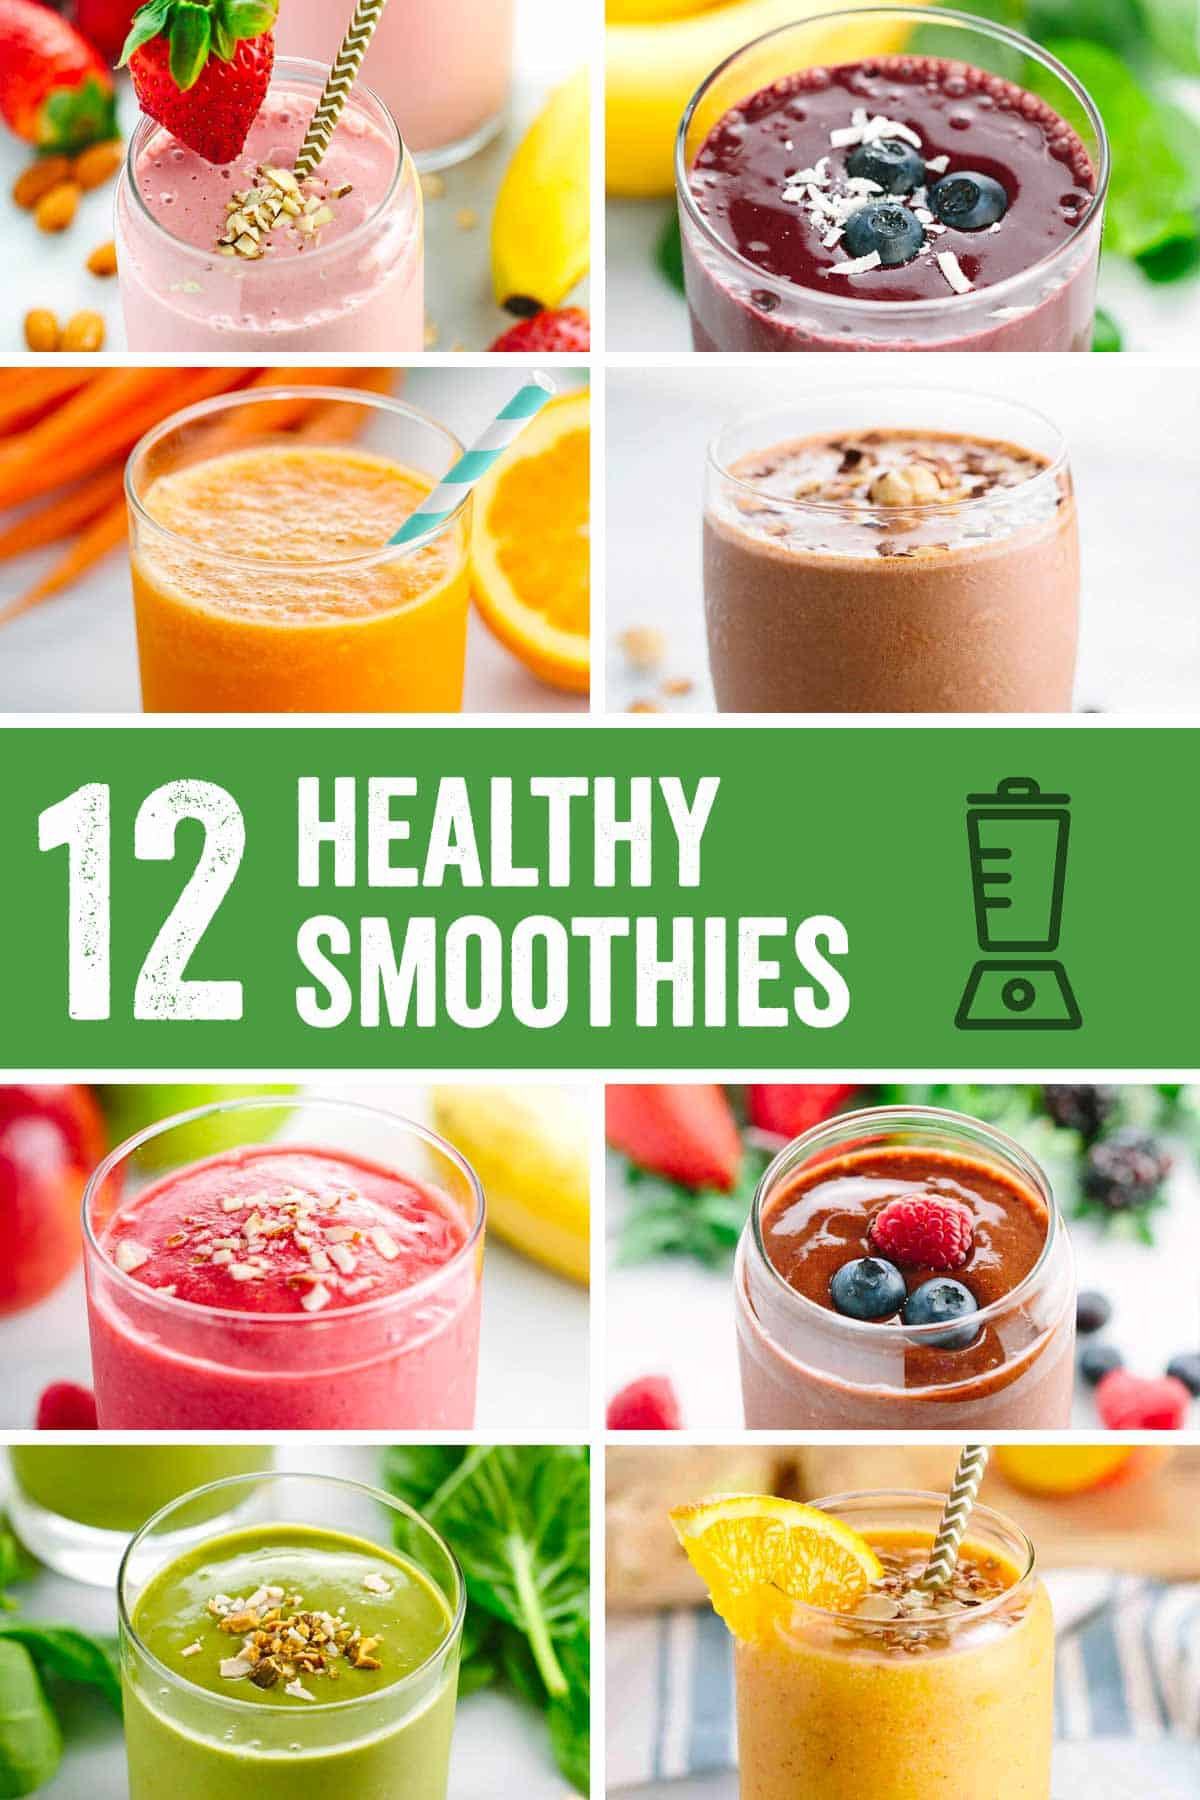 Healthy Smoothies To Make  Roundup Easy Five Minute Healthy Smoothie Recipes